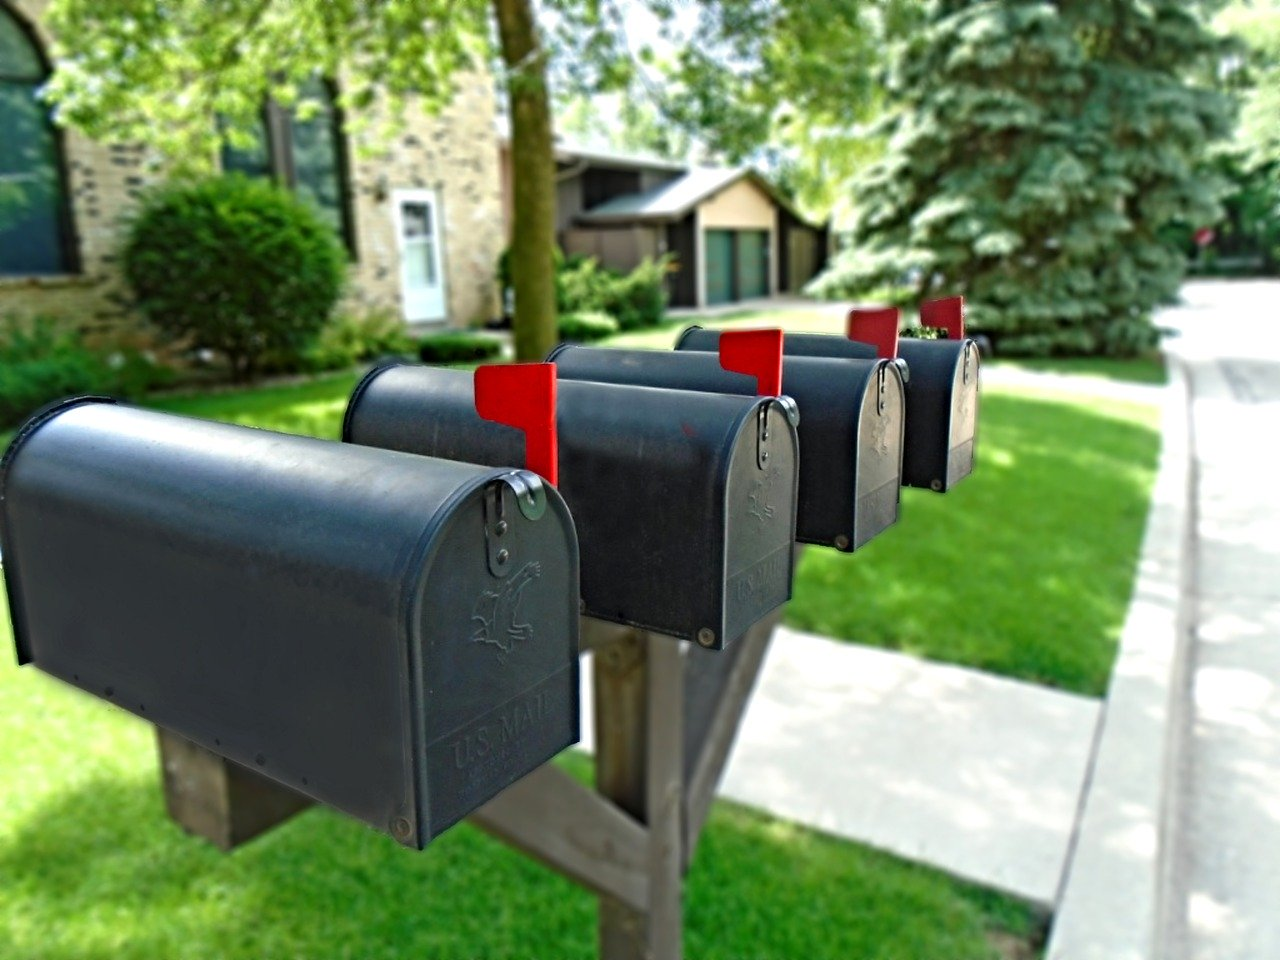 Upcoming Tax Office Mailings